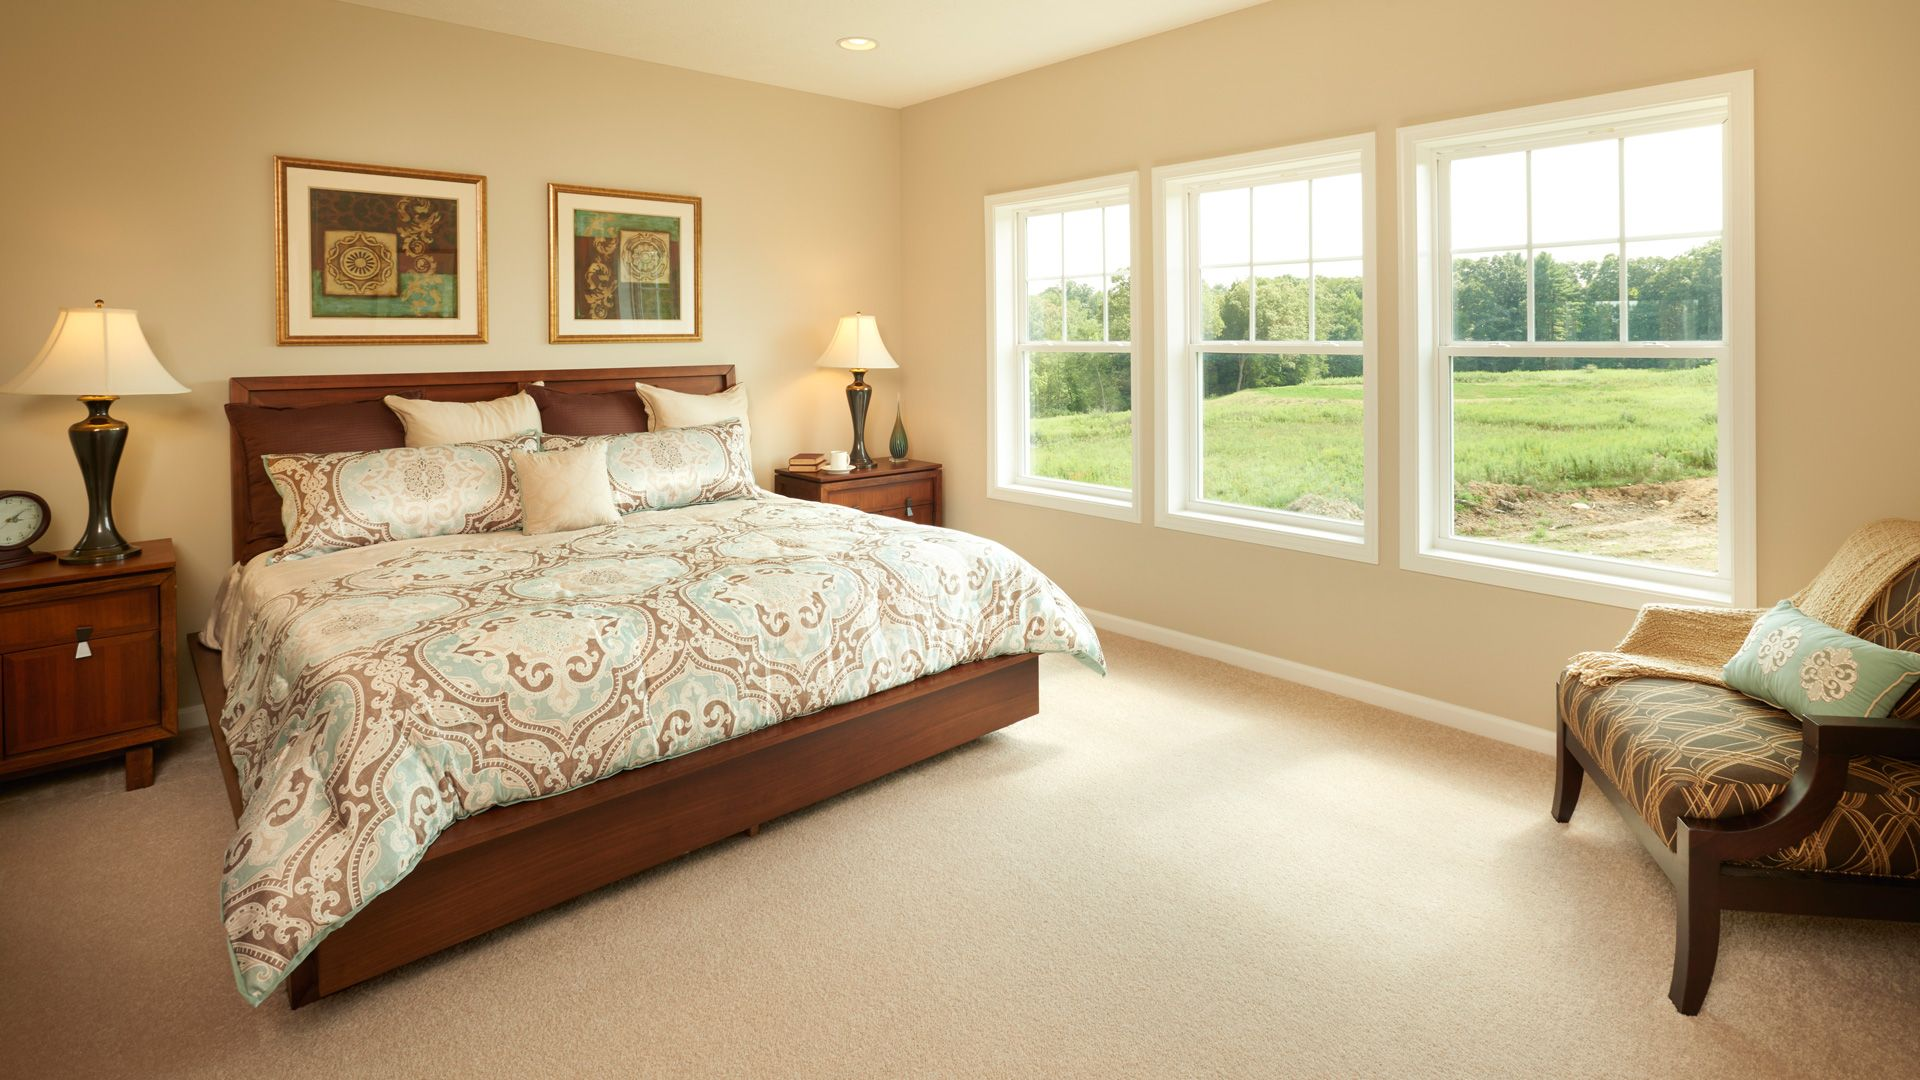 Bedroom featured in the Aspen By S & A Homes in State College, PA